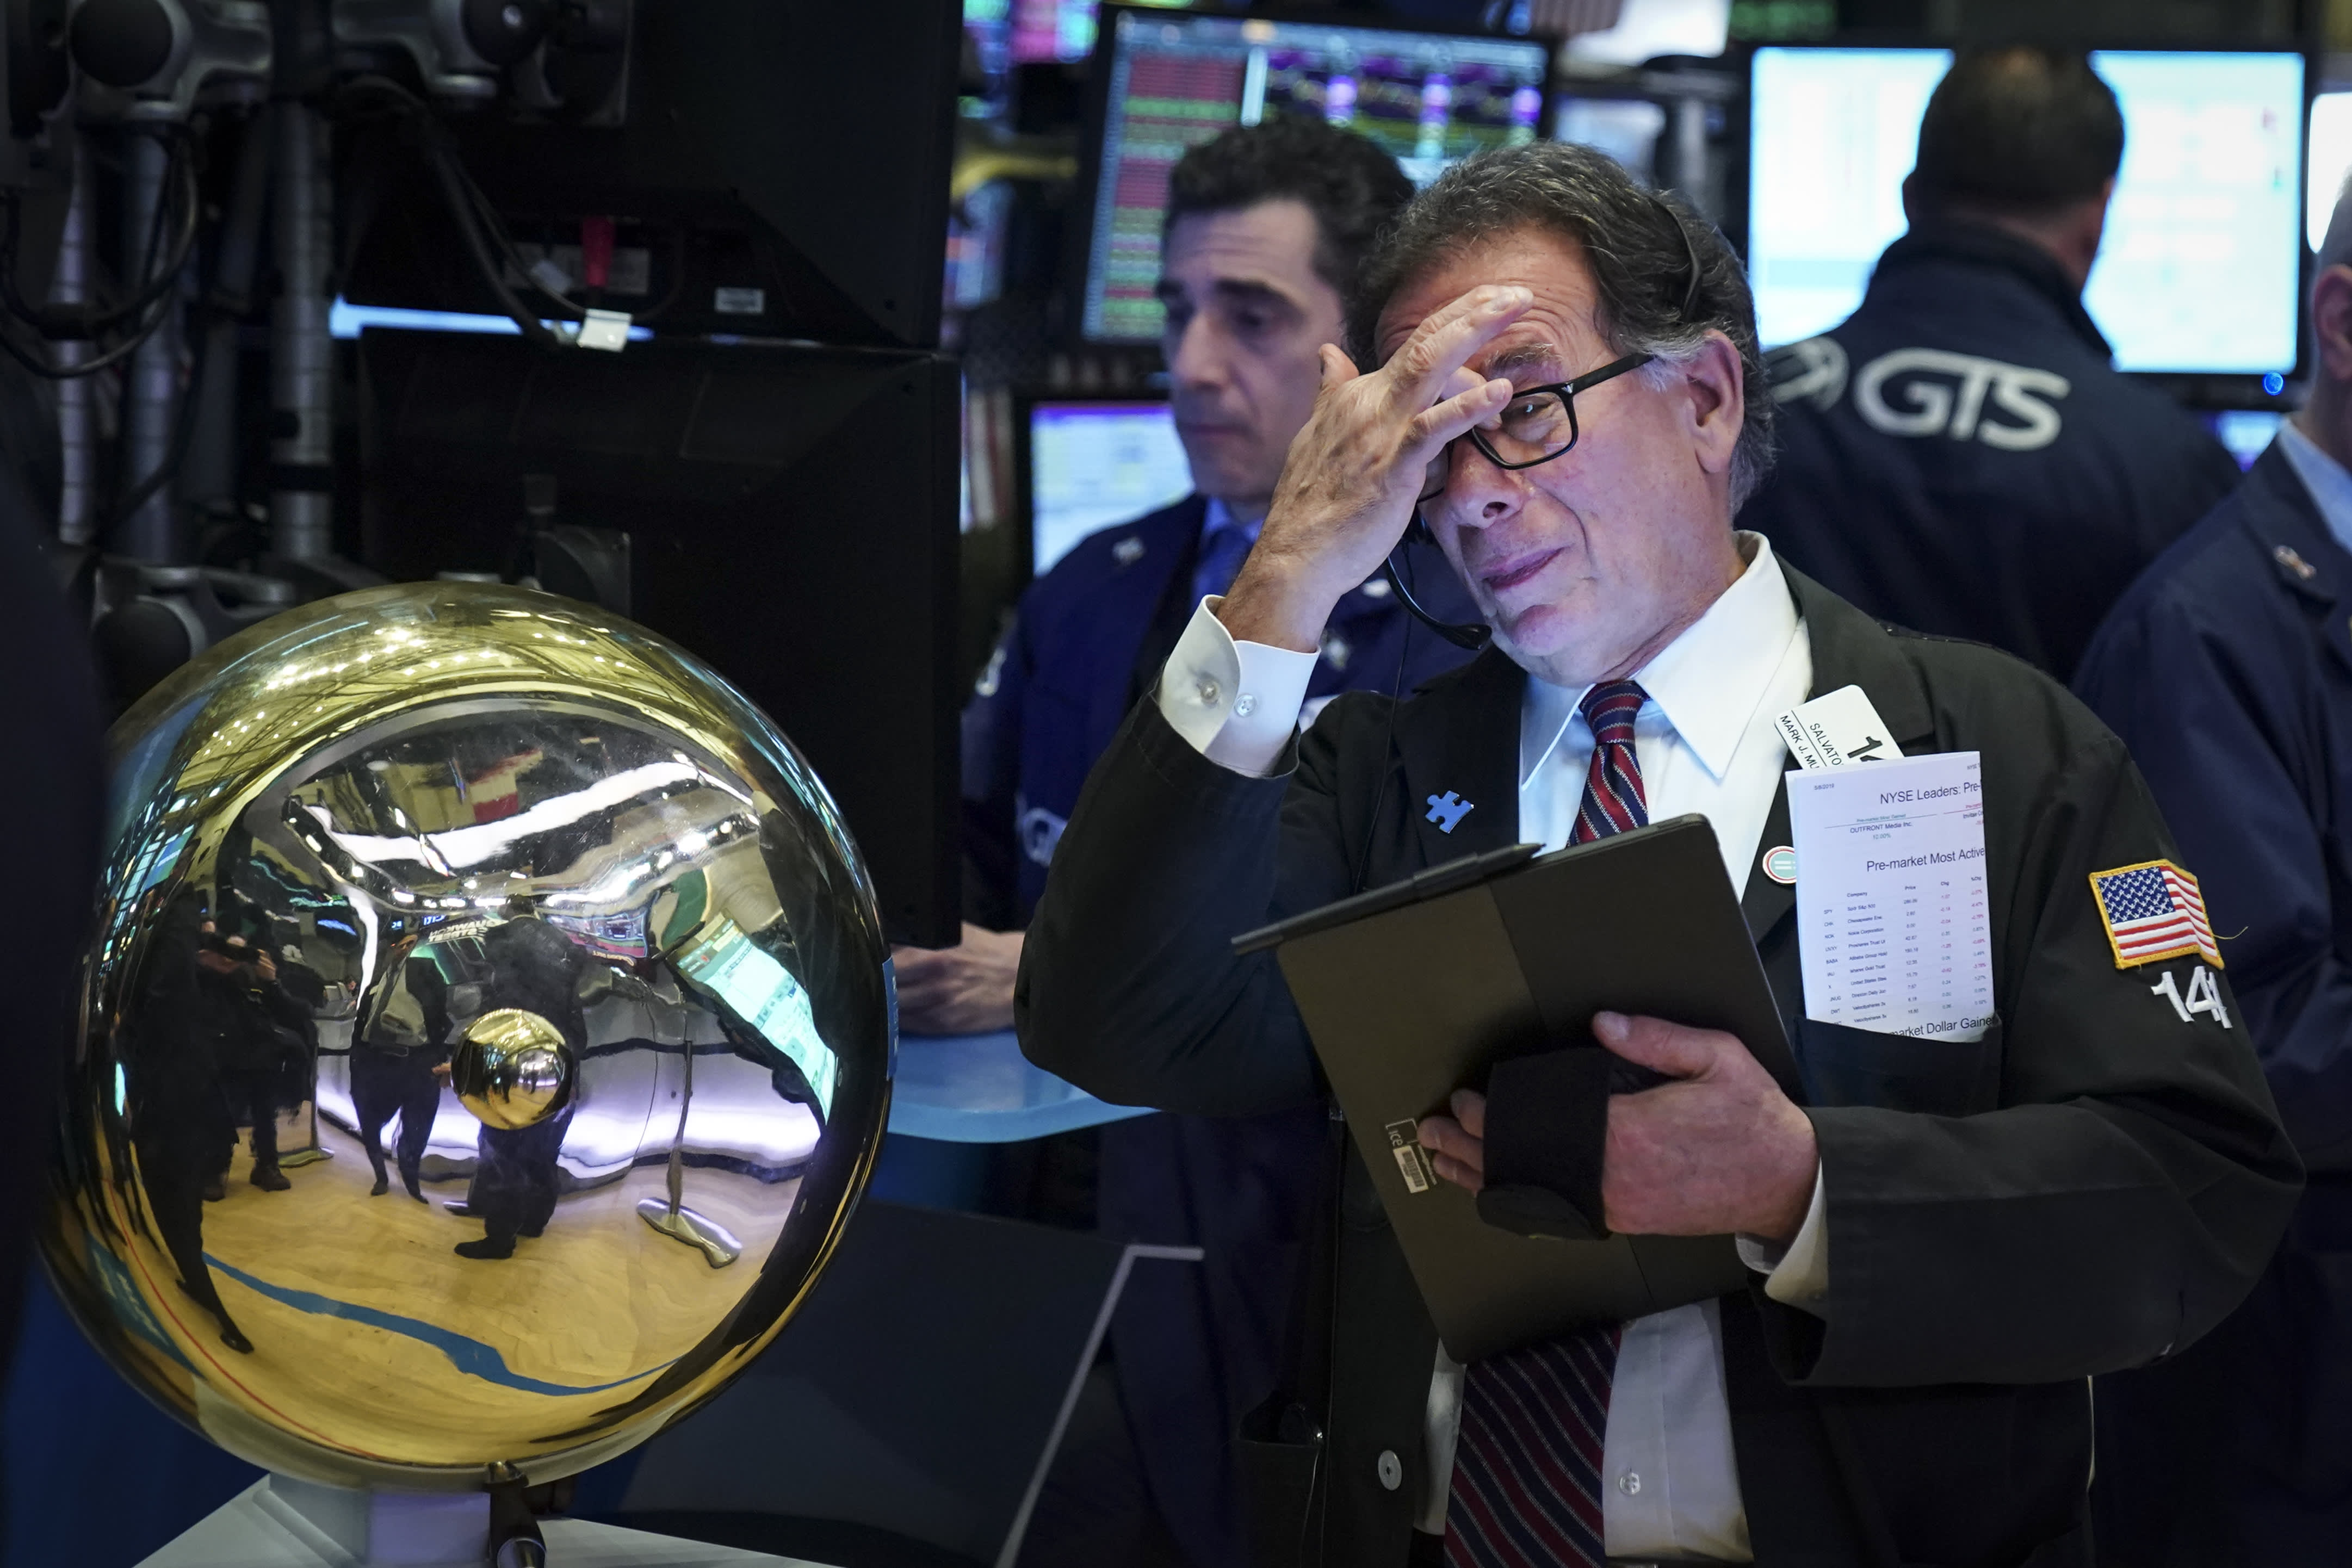 Traders and financial professionals work on the floor of the New York Stock Exchange (NYSE) ahead of the opening bell, May 8, 2019 in New York City.